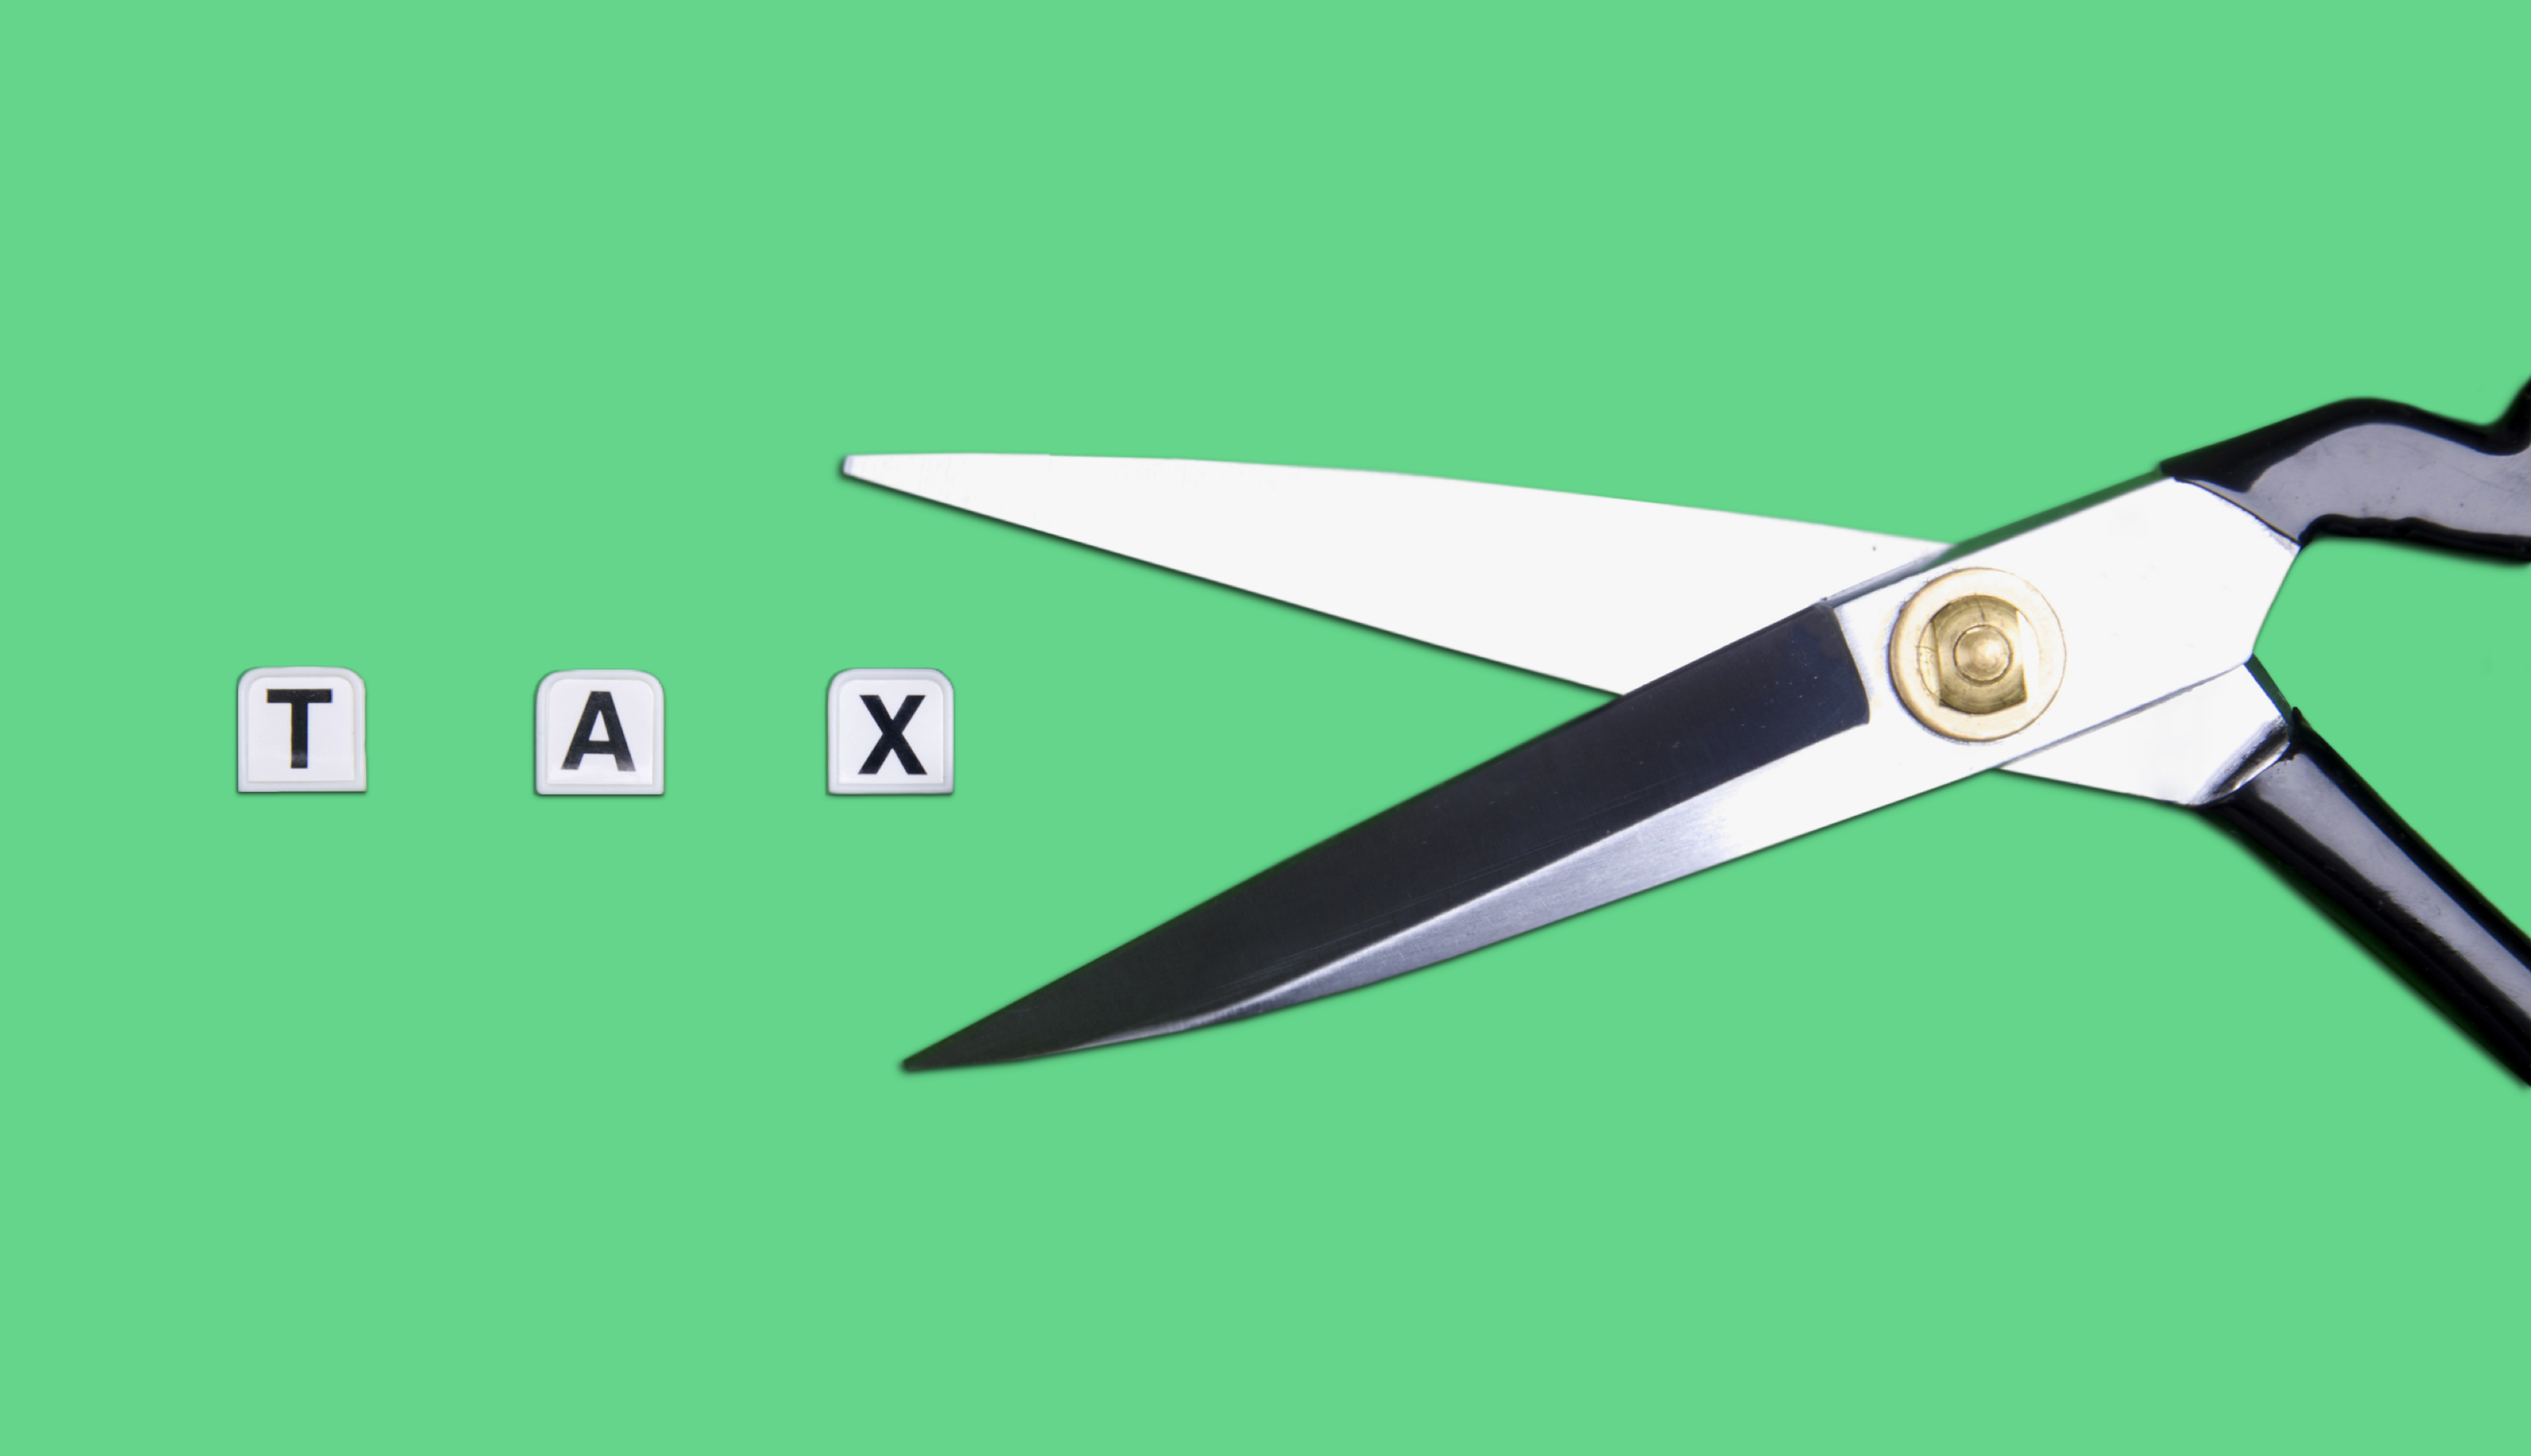 Scissors and TAX on a green background.